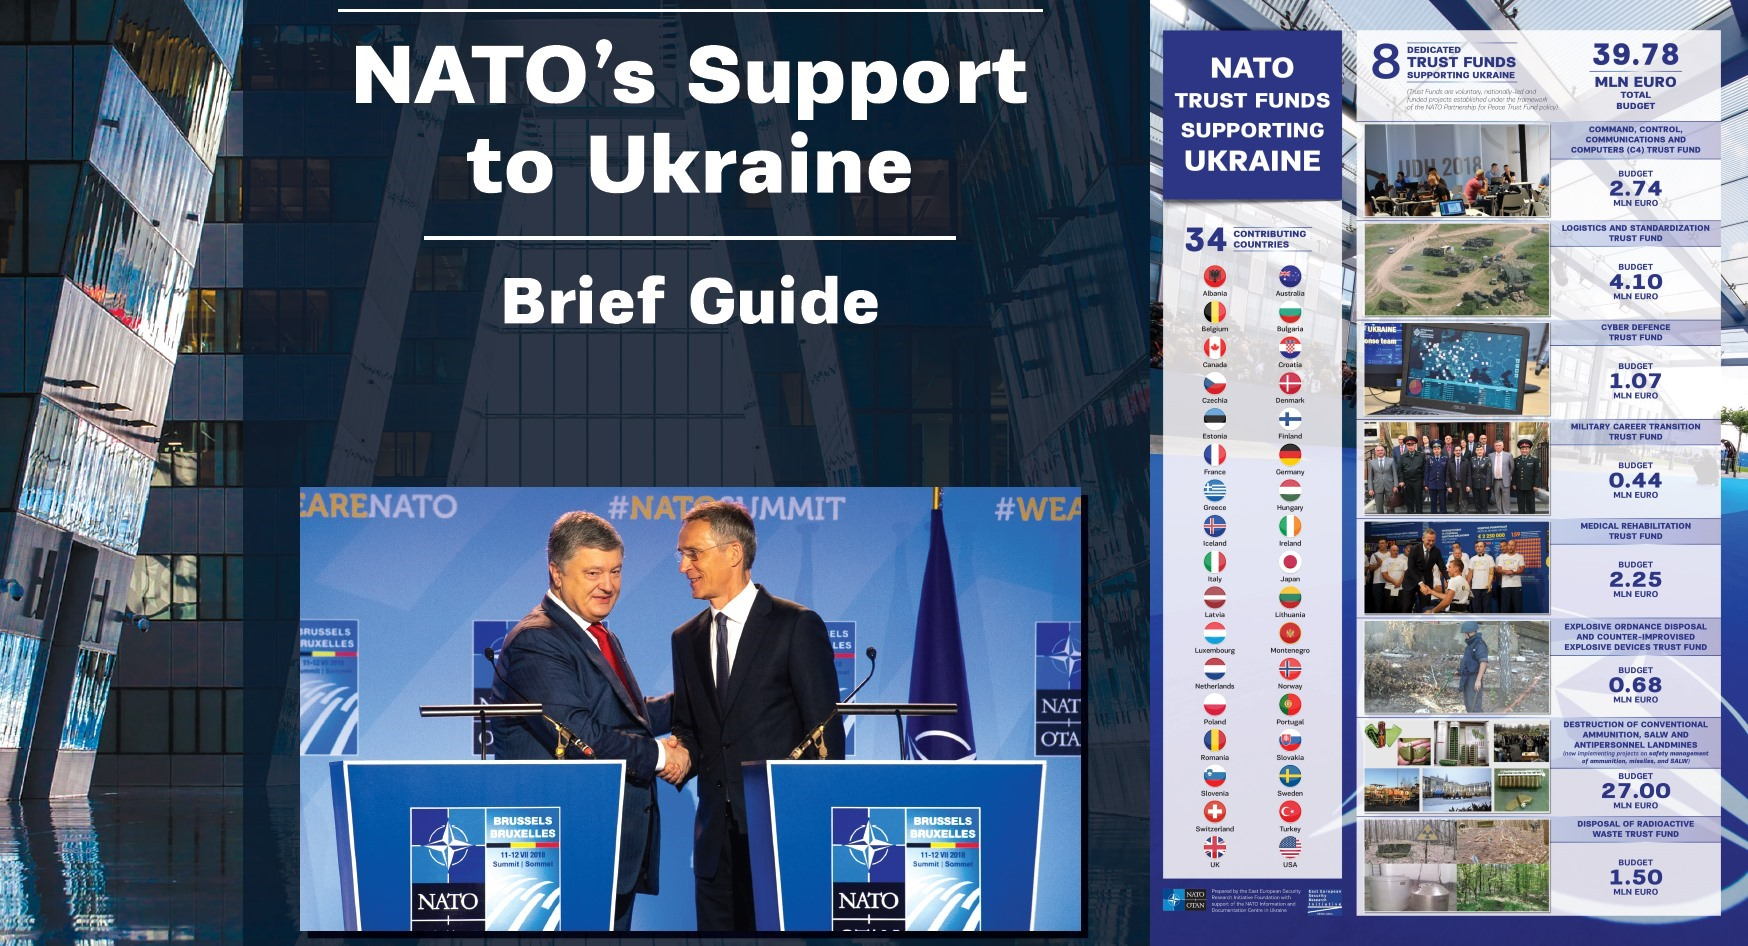 NATO's Support to Ukraine: Facts and Infographic